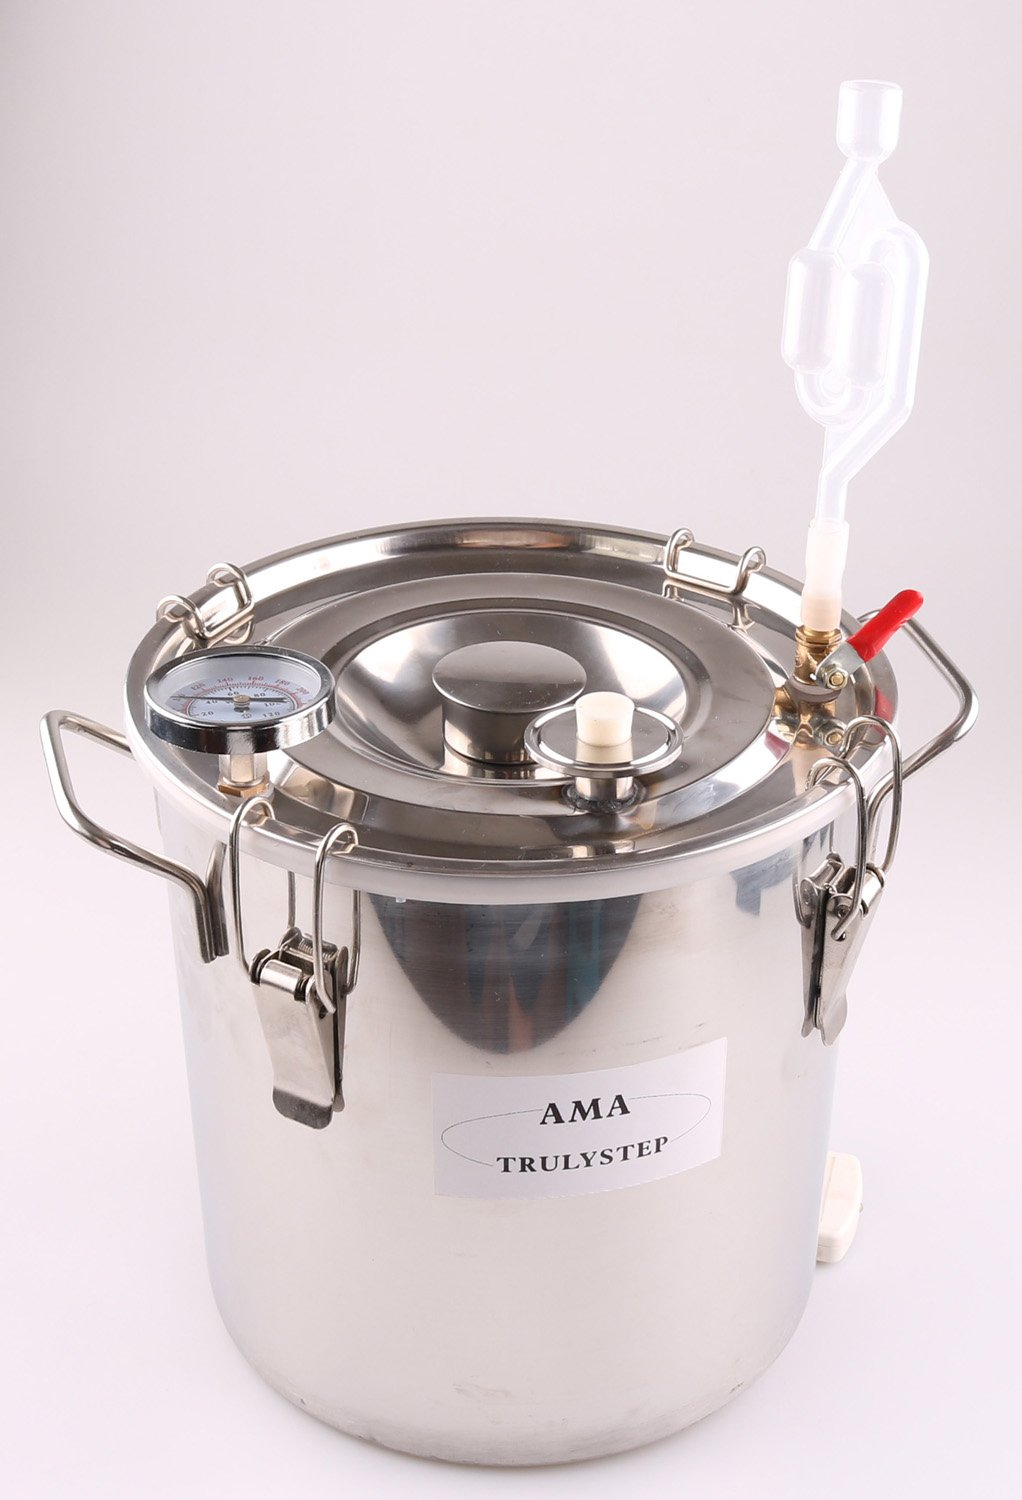 Spare Parts for Moonshine Still/Home Distiller: Stainless Fermenter Pot Boiler & Thermometer & Airlock (fit 2 Pots Distiller, 8 Gallon 30 Litres)